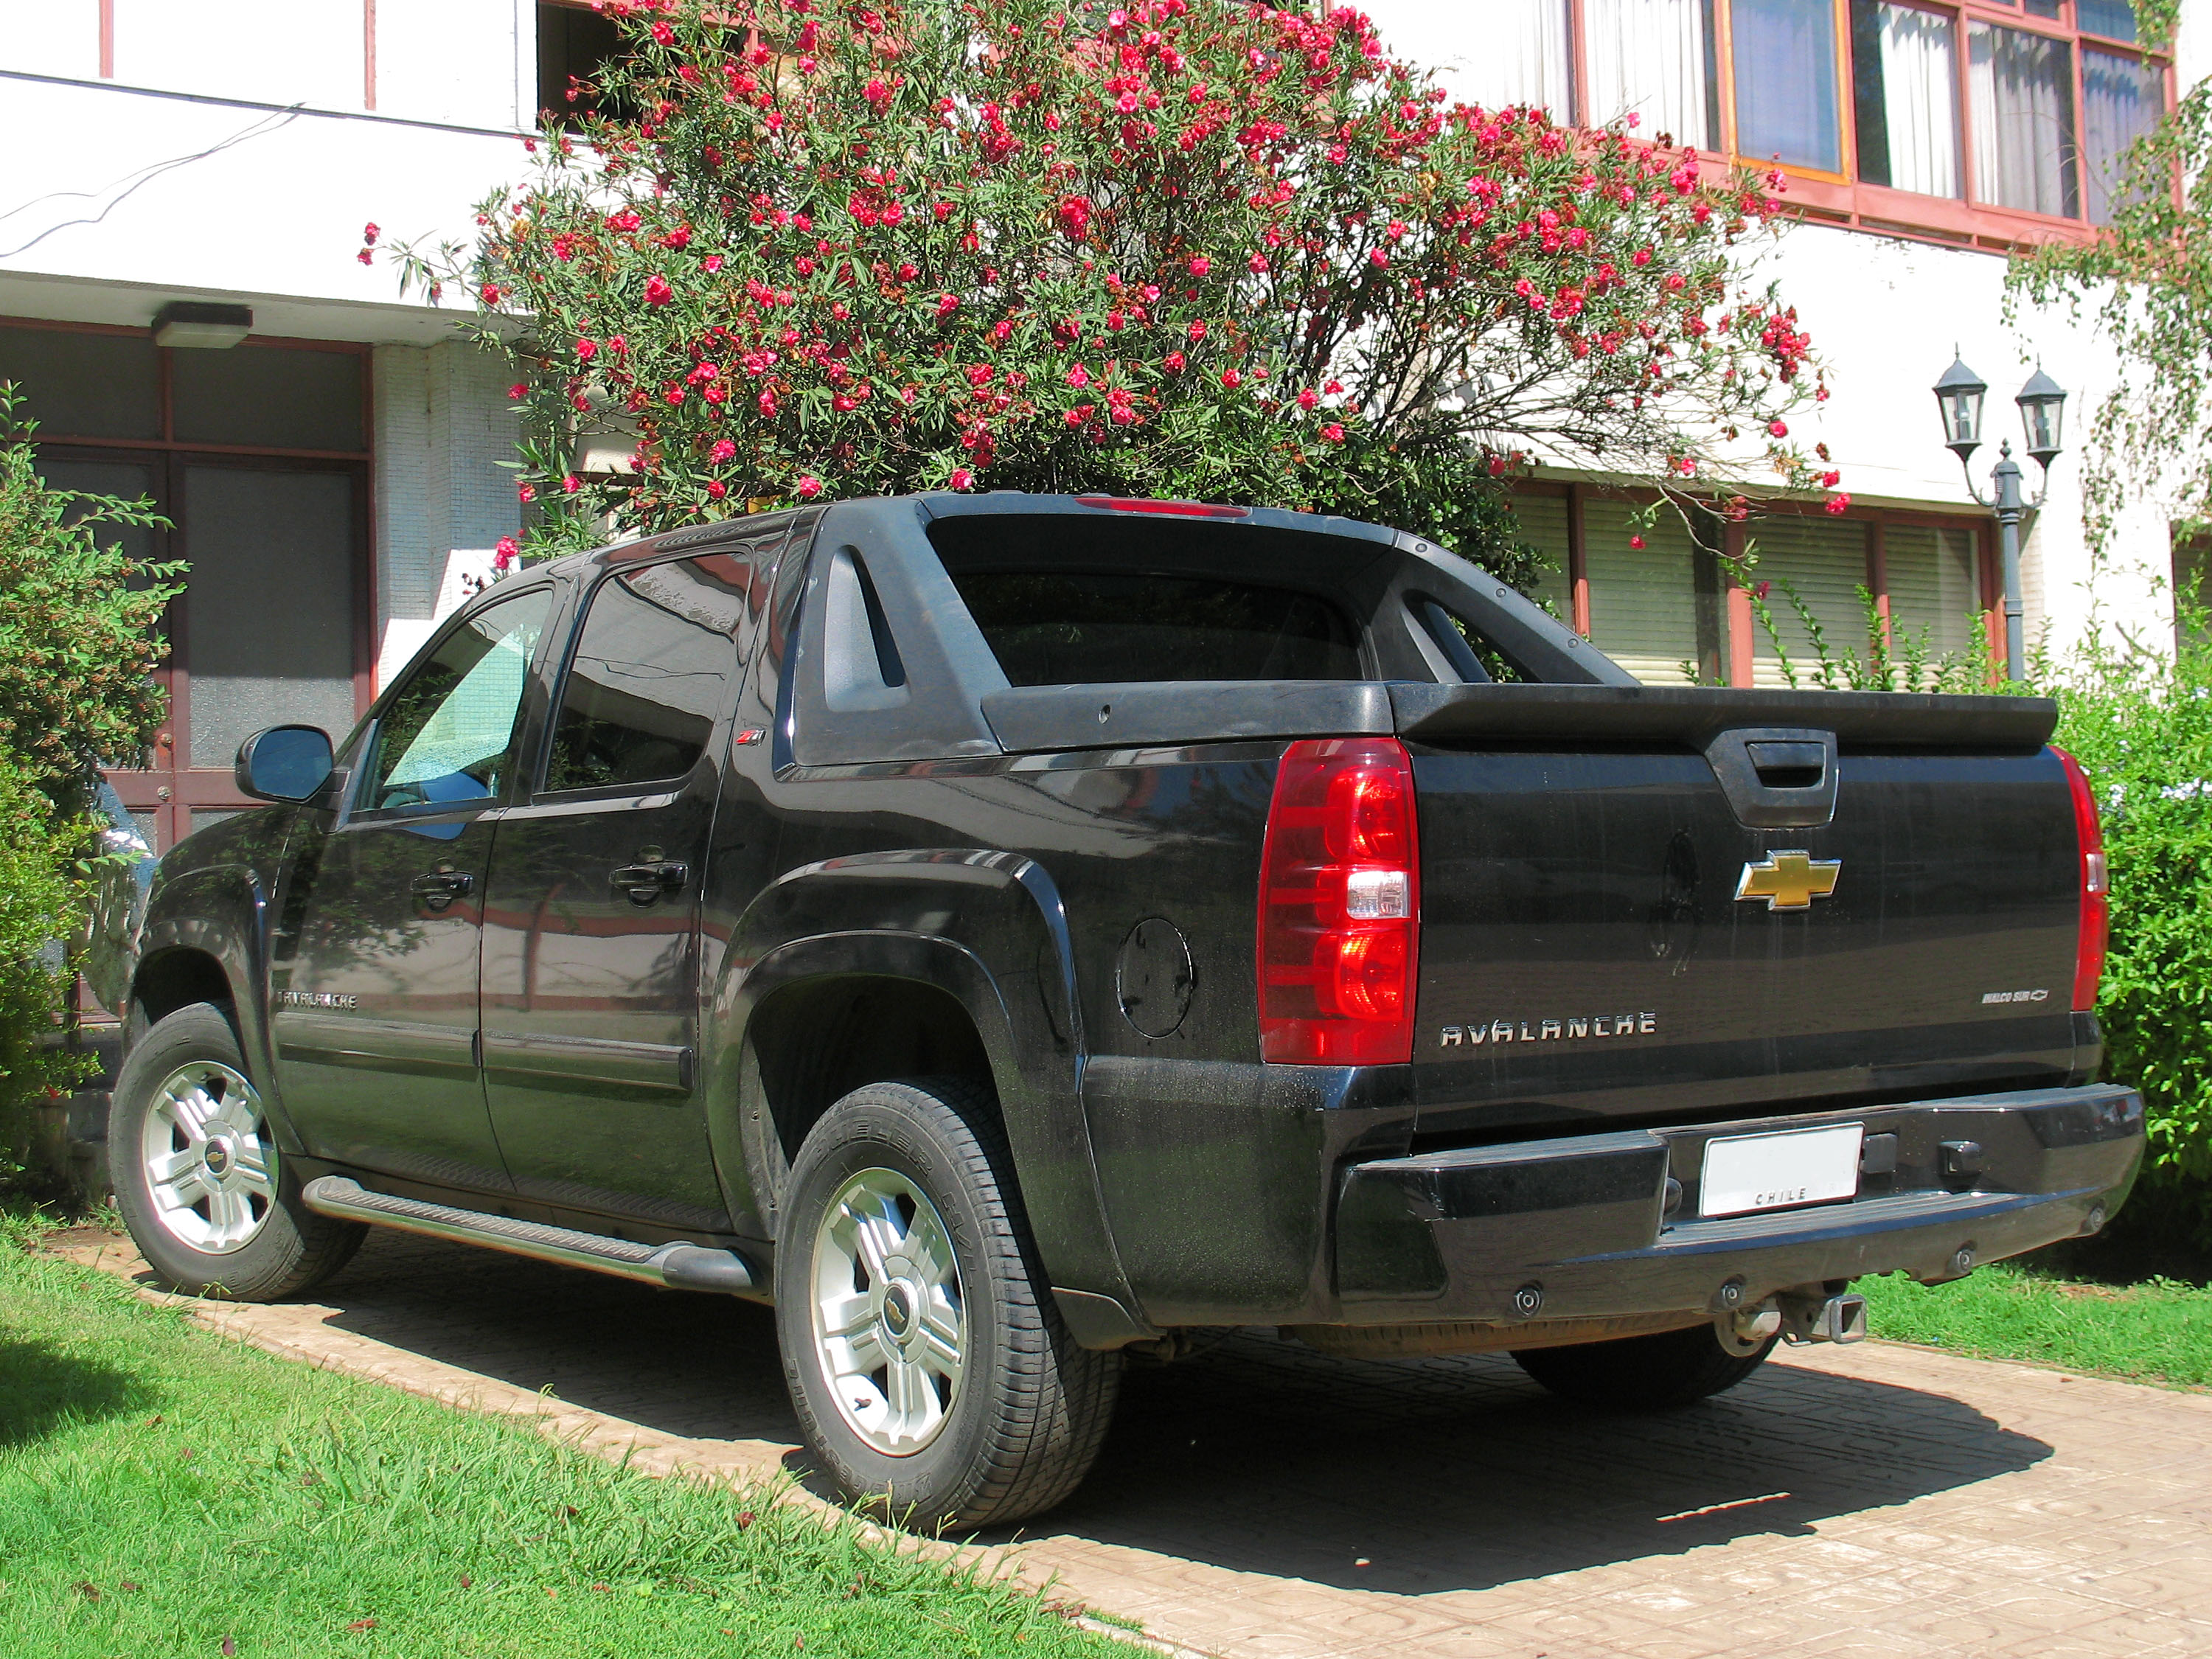 Filechevrolet avalanche z71 2009 14341399415g wikimedia filechevrolet avalanche z71 2009 14341399415g sciox Image collections